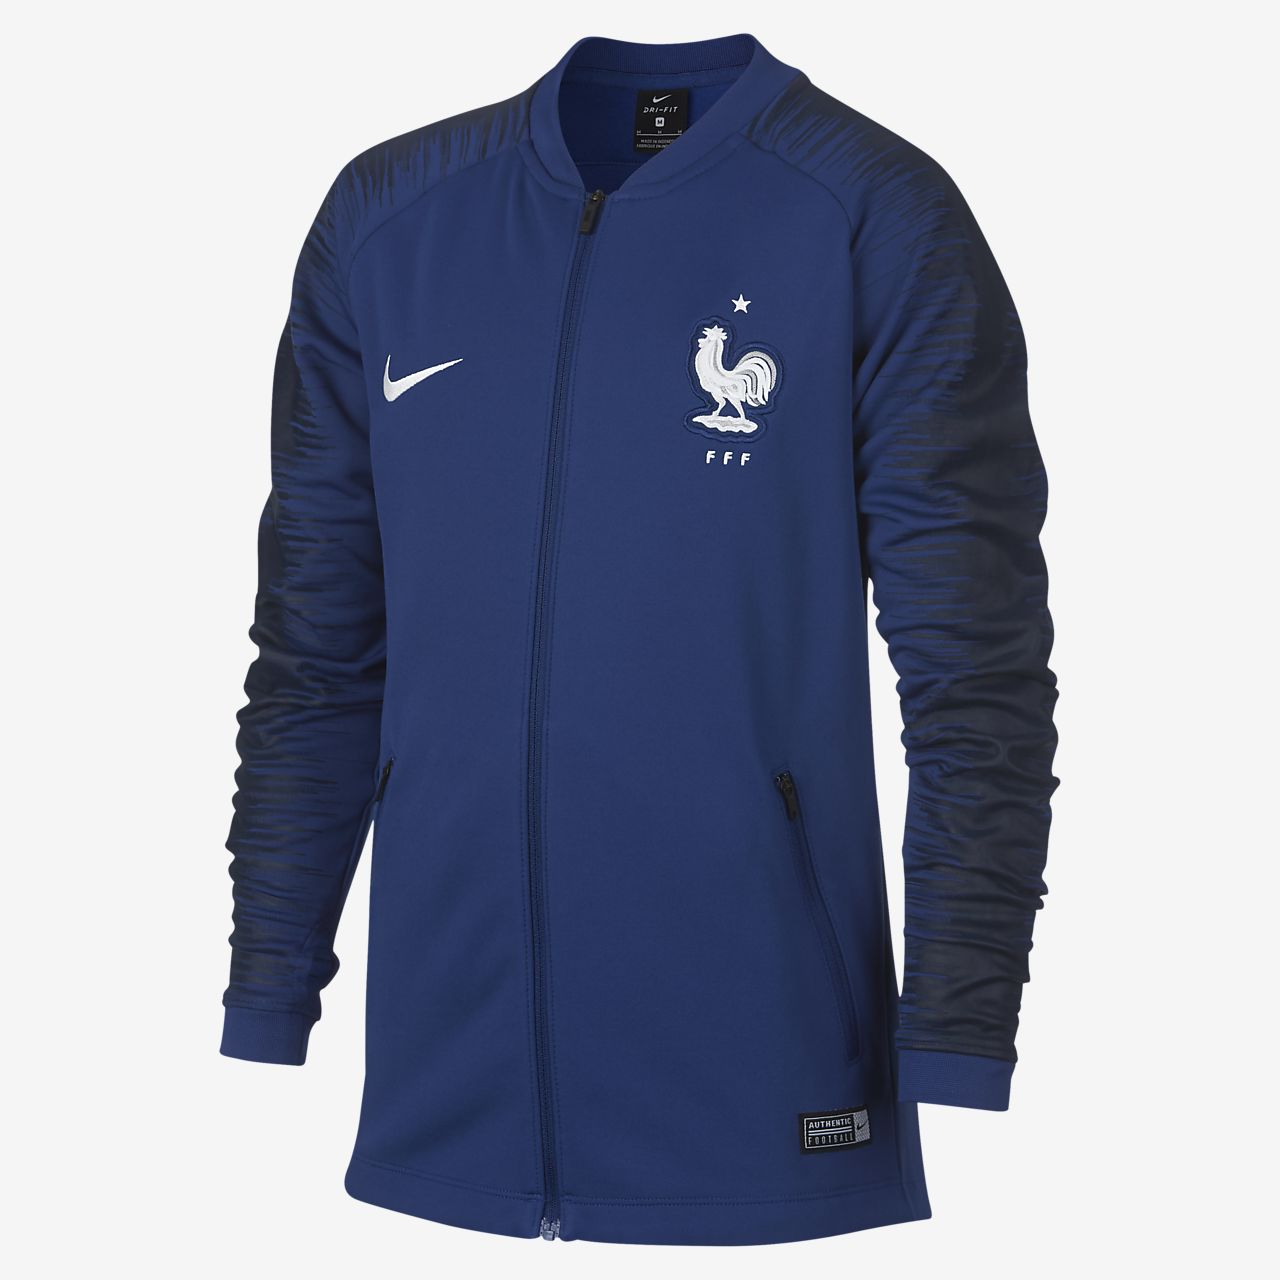 Nike Women's Academy Poly Jacket Royal Blue White